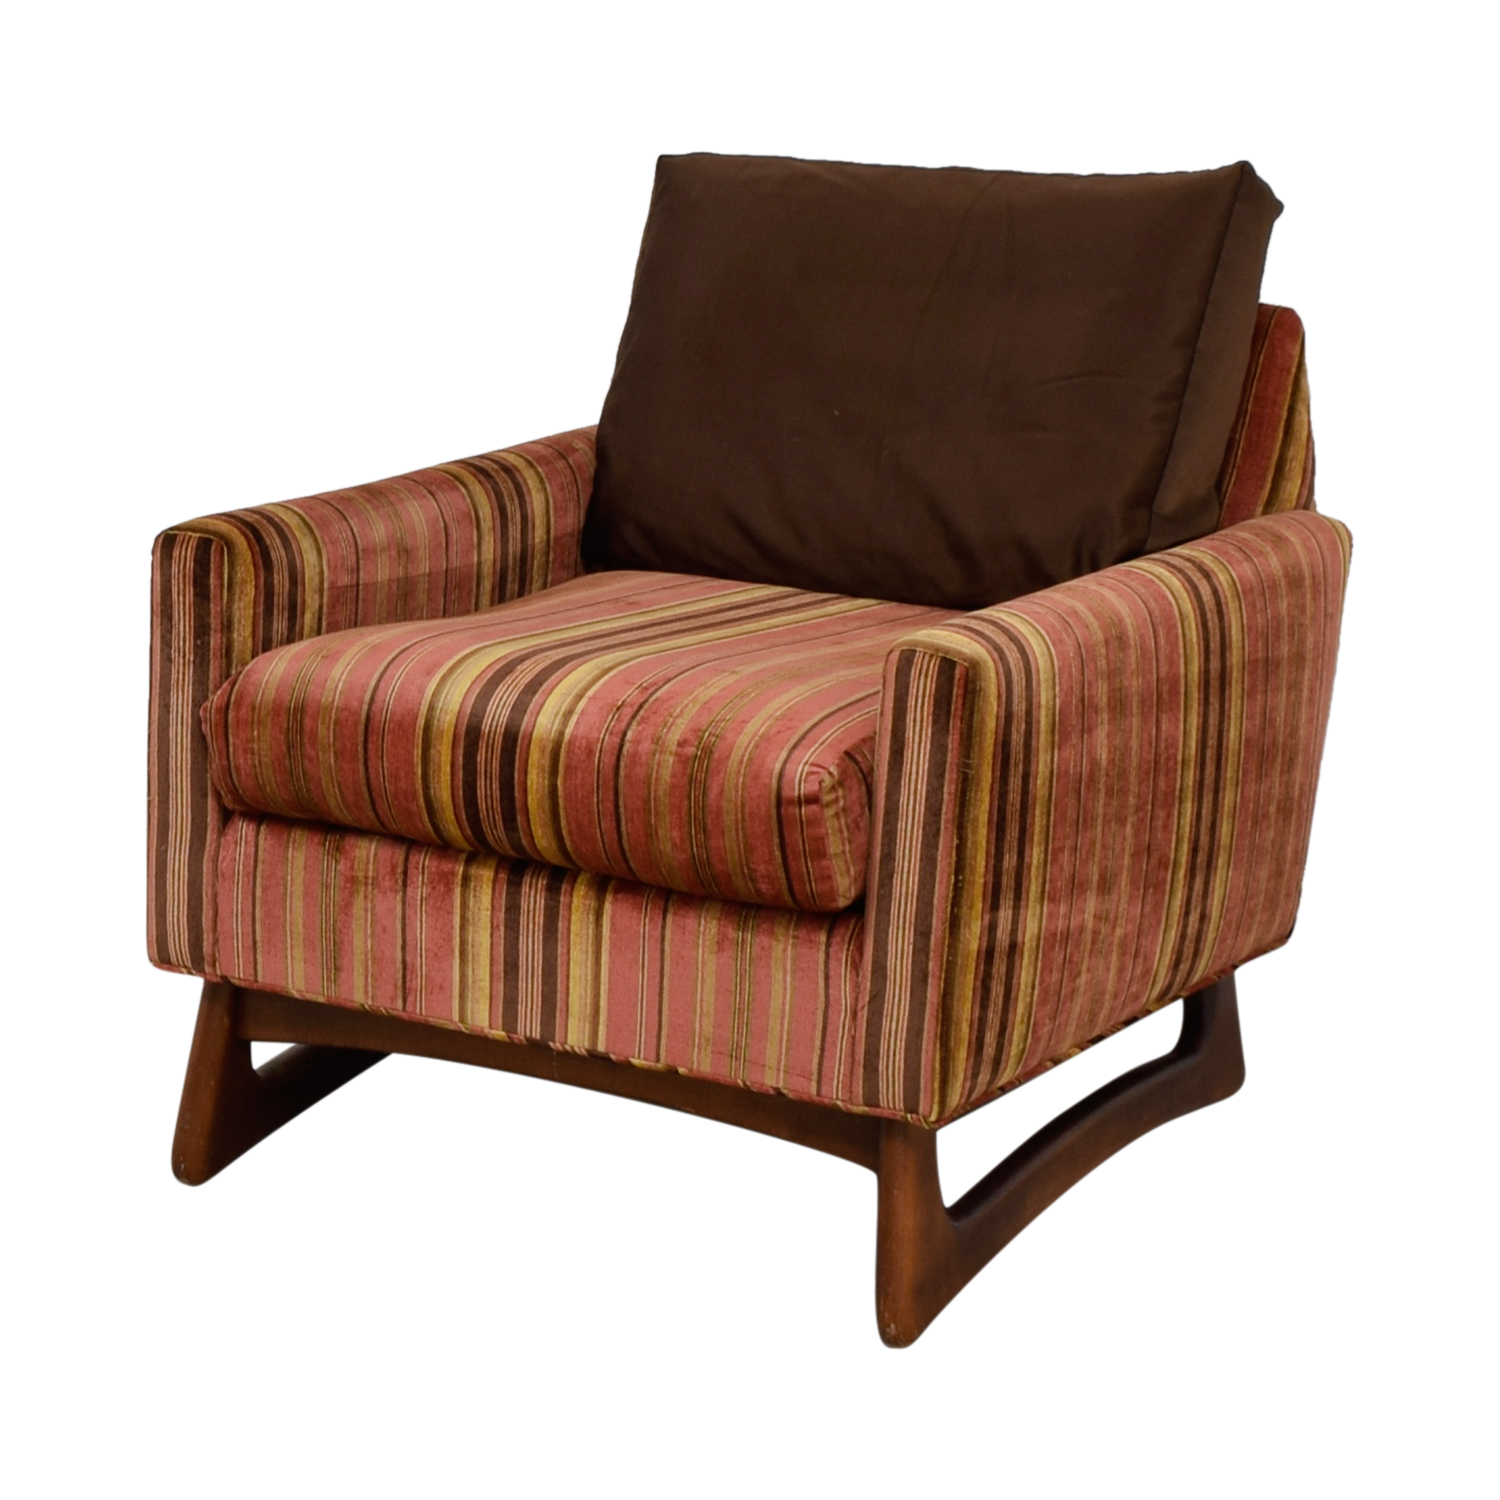 Strange 89 Off Adrian Pearsall Adrian Pearsall Red And Yellow Striped Accent Chair Chairs Short Links Chair Design For Home Short Linksinfo